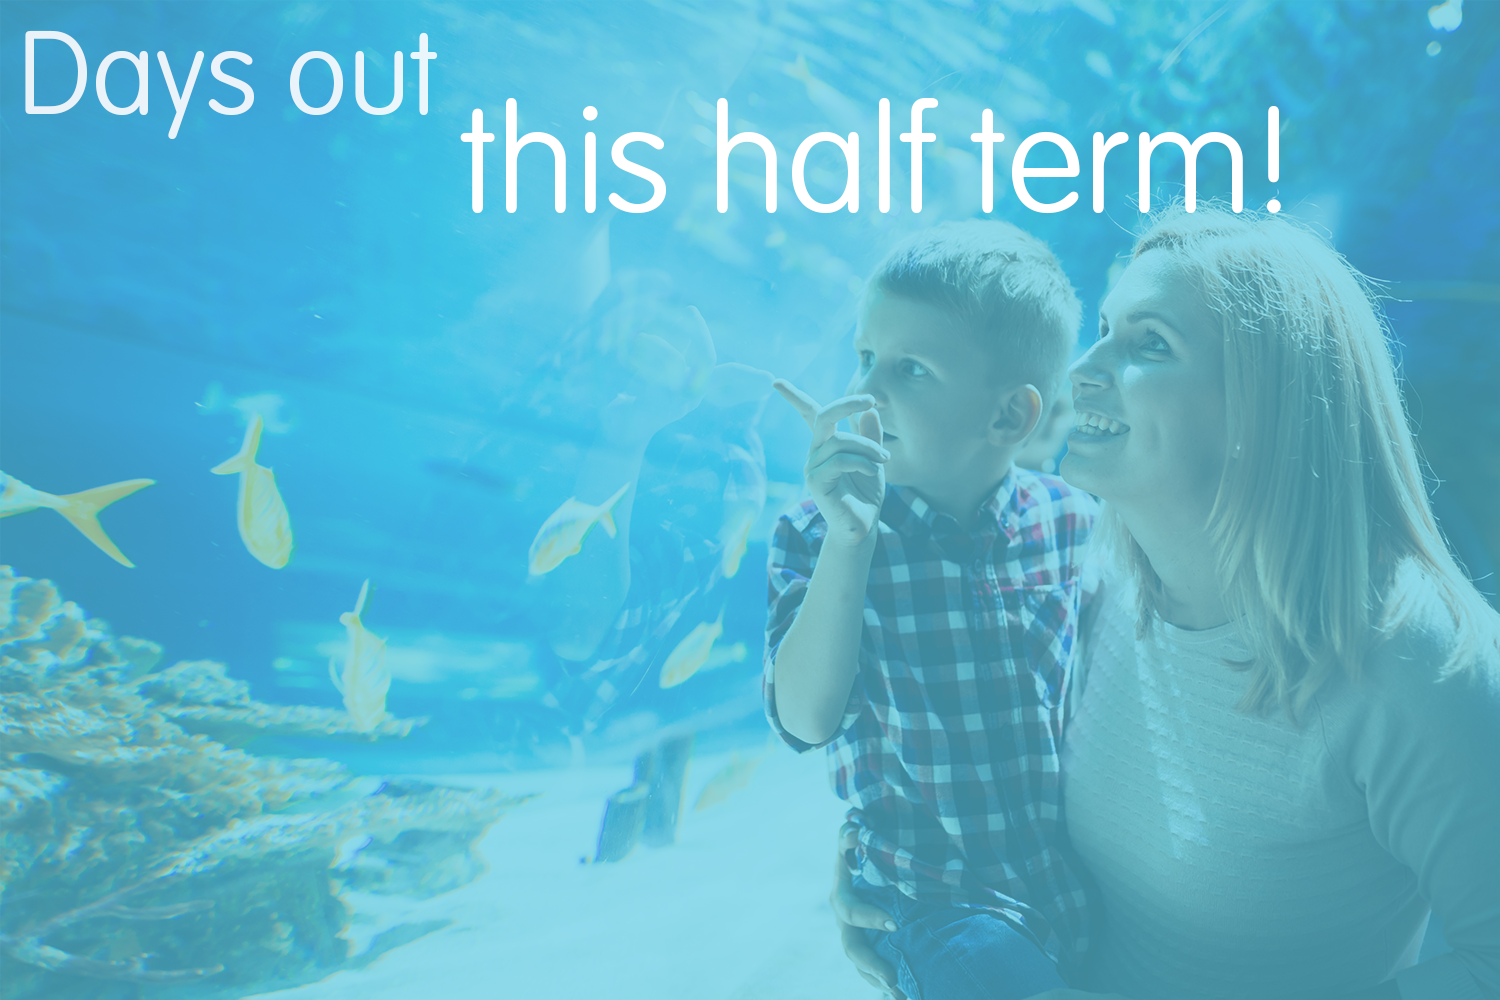 Have fun this half-term